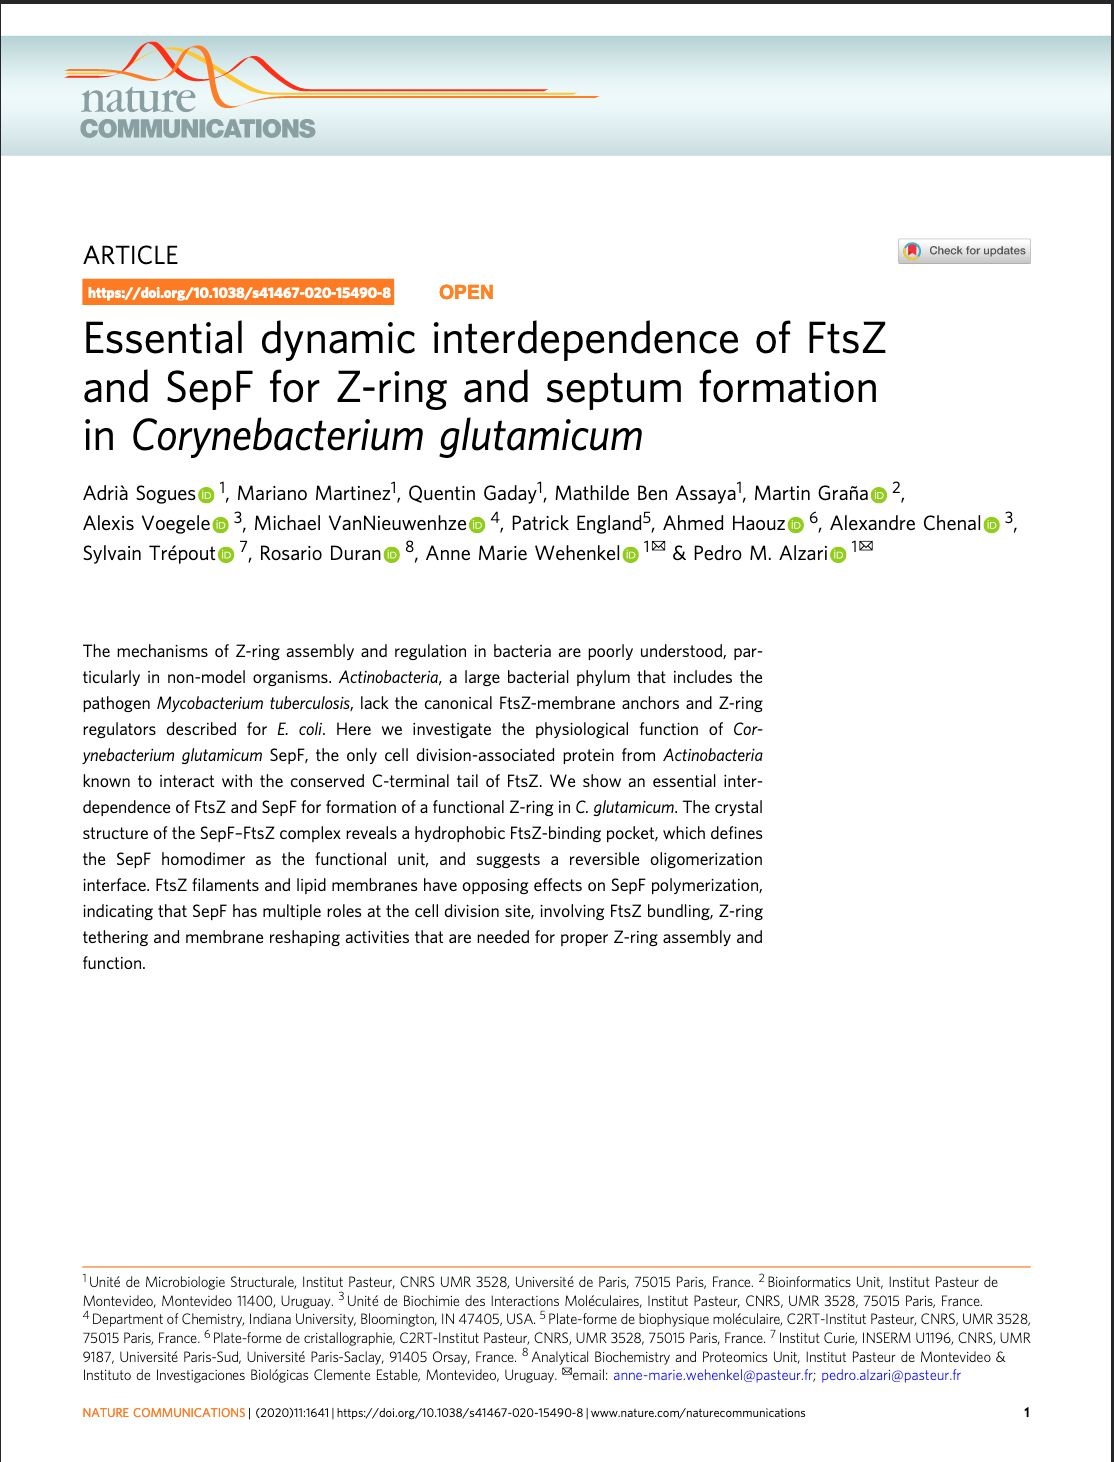 Essential dynamic interdependence of FtsZ and SepF for Z-ring and septum formation in Corynebacterium glutamicum